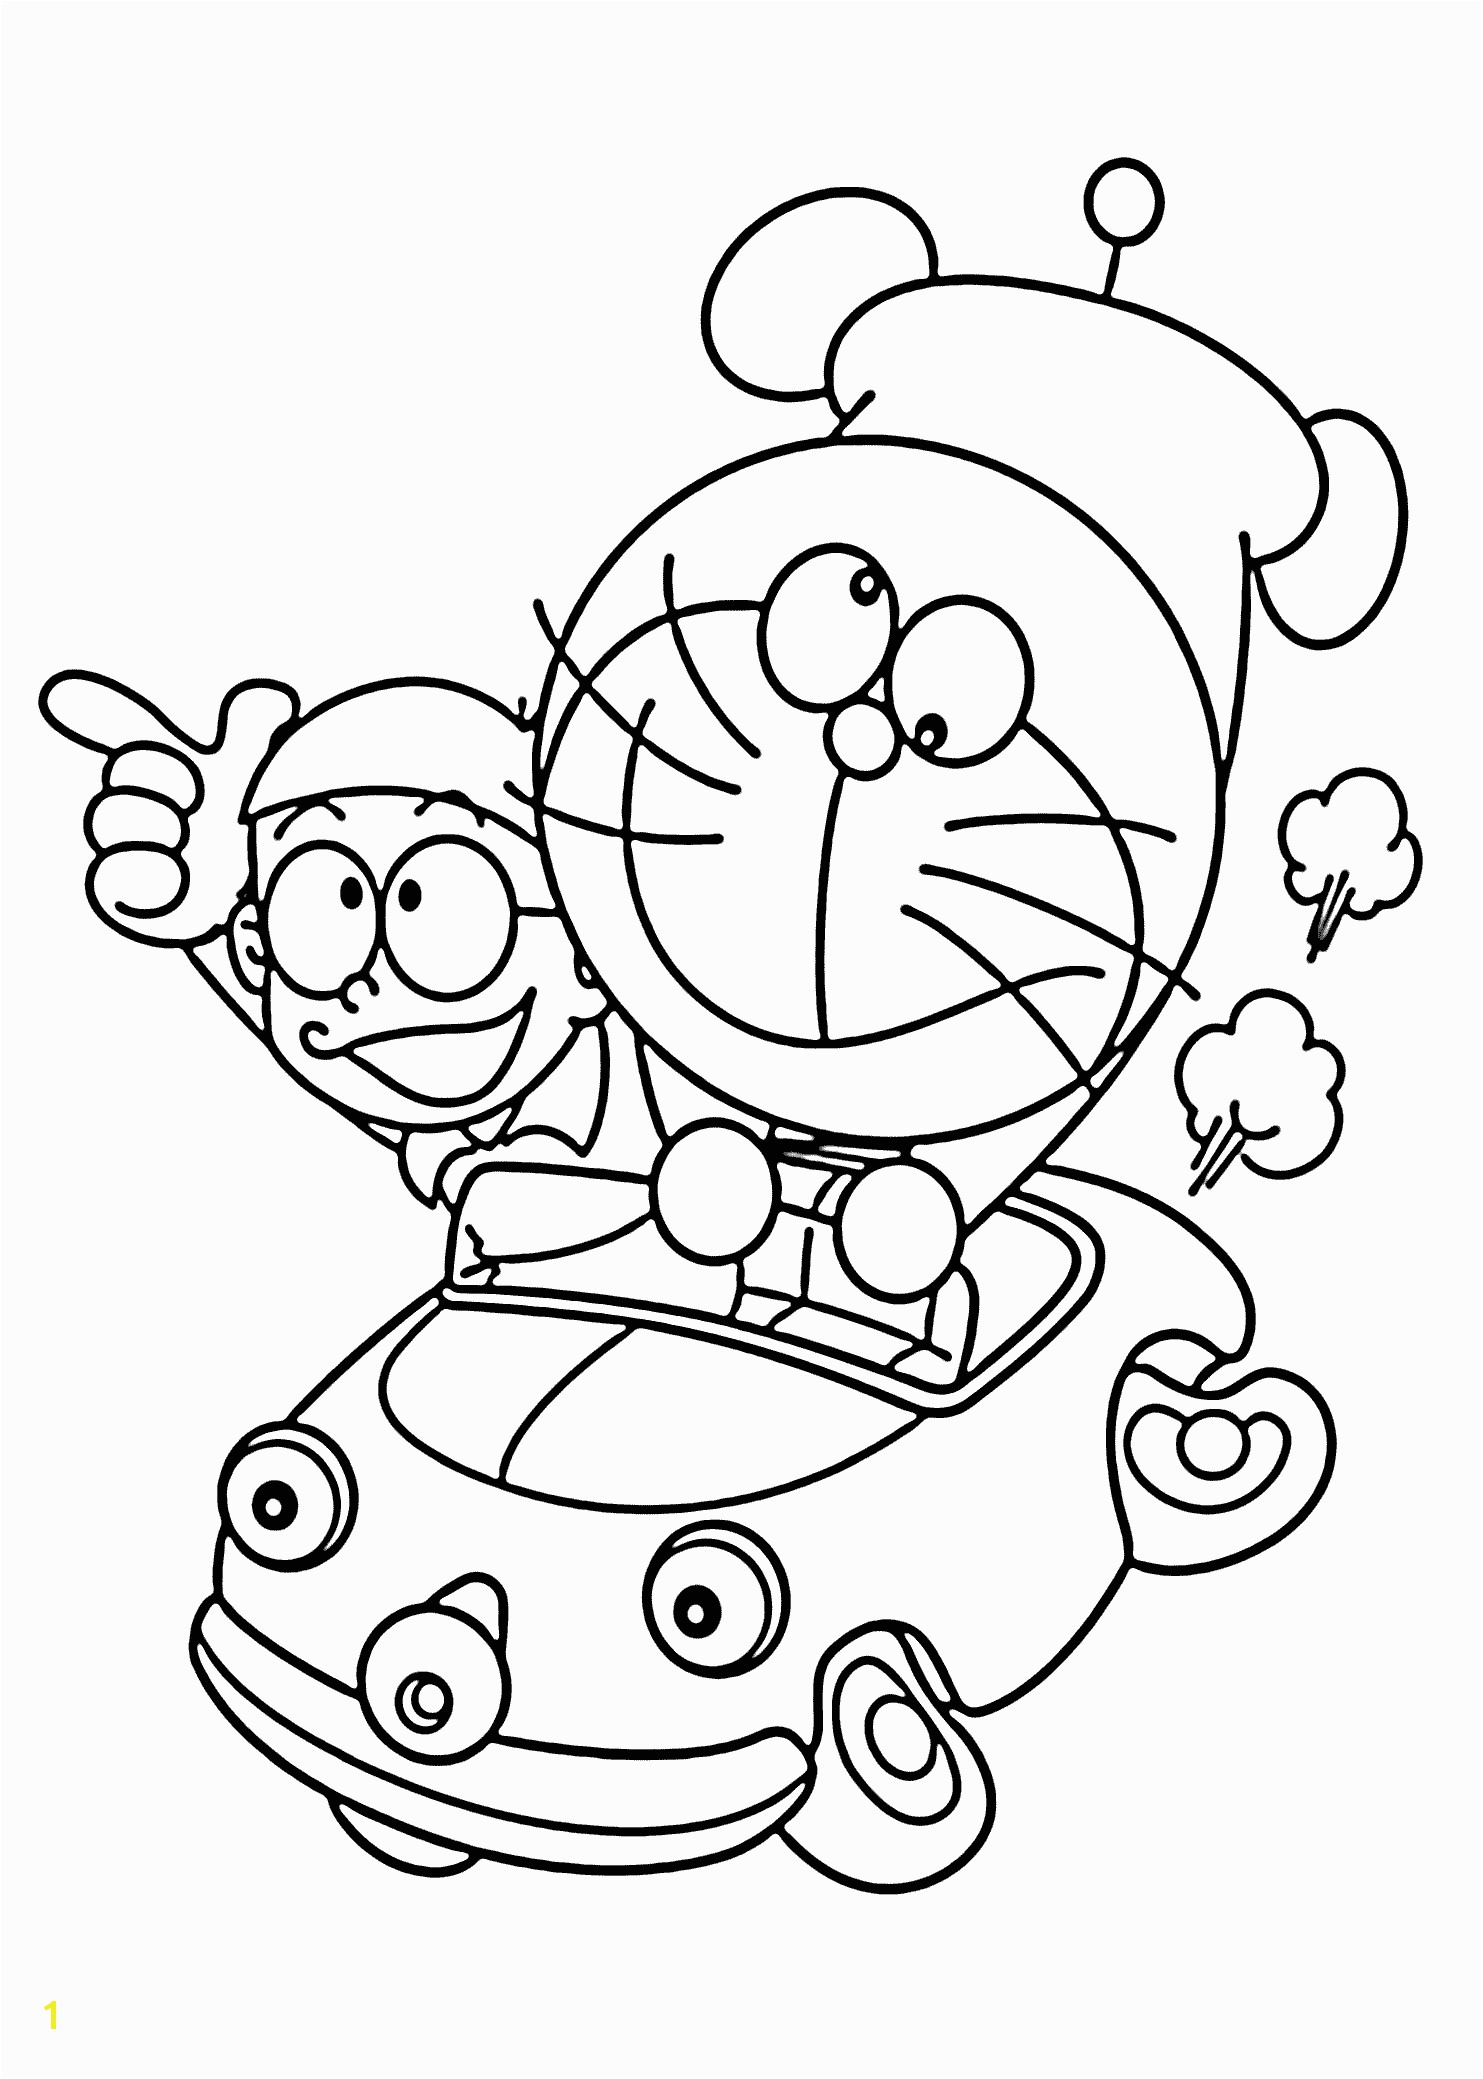 Doraemon in car coloring pages for kids printable free Doraemon cartoon